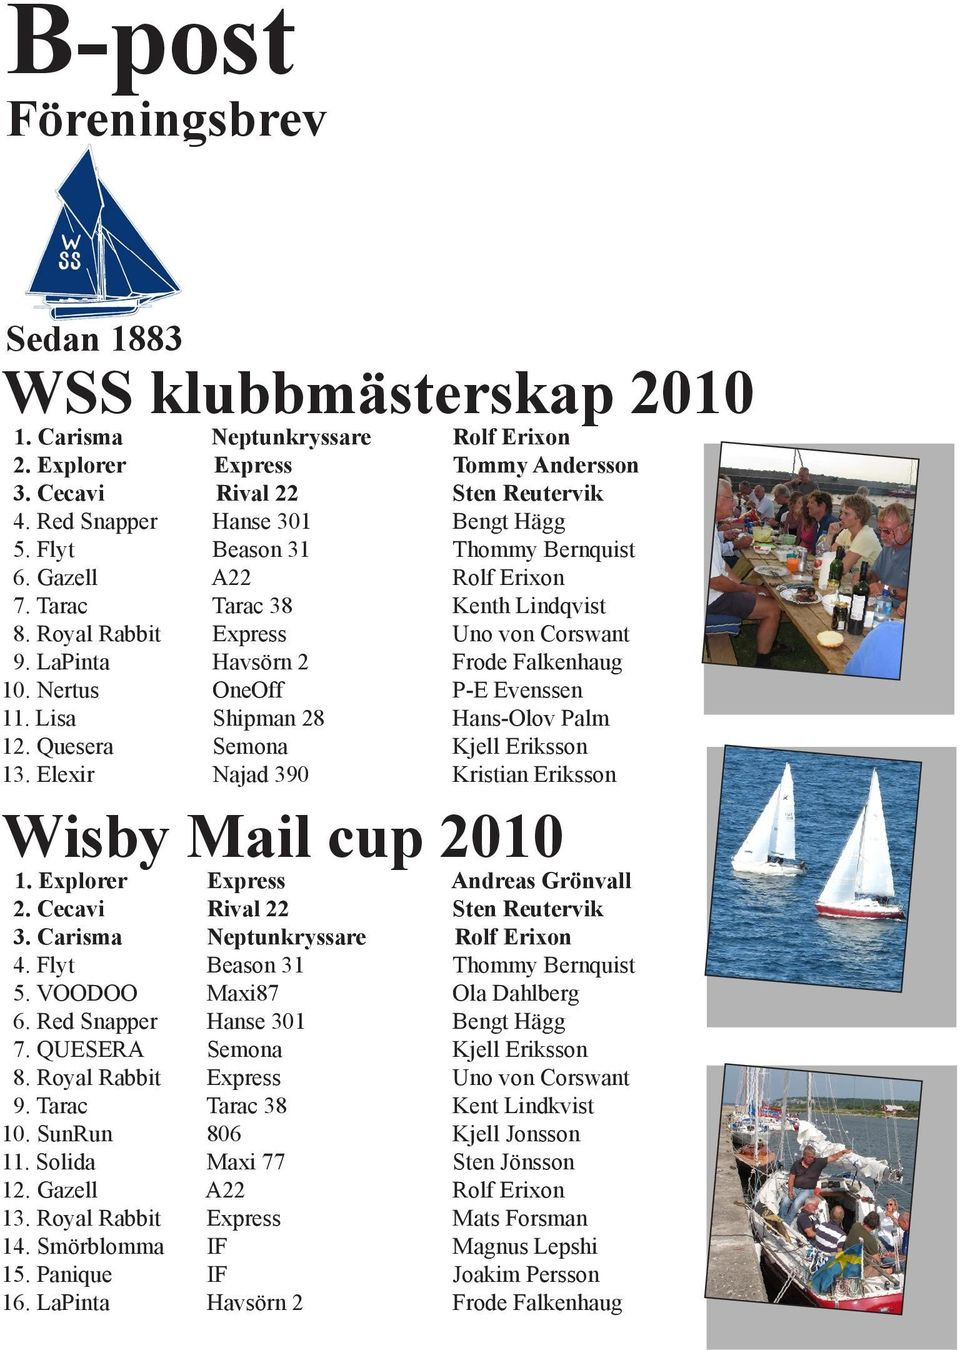 Hans-Olov Palm Kjell Eriksson Kristian Eriksson Wisby Mail cup 1. Explorer 2. Cecavi 3. Carisma 4. Flyt 5. VOODOO 6. Red Snapper 7. QUESERA 8. Royal Rabbit 9. Tarac 10. SunRun 11. Solida 12.